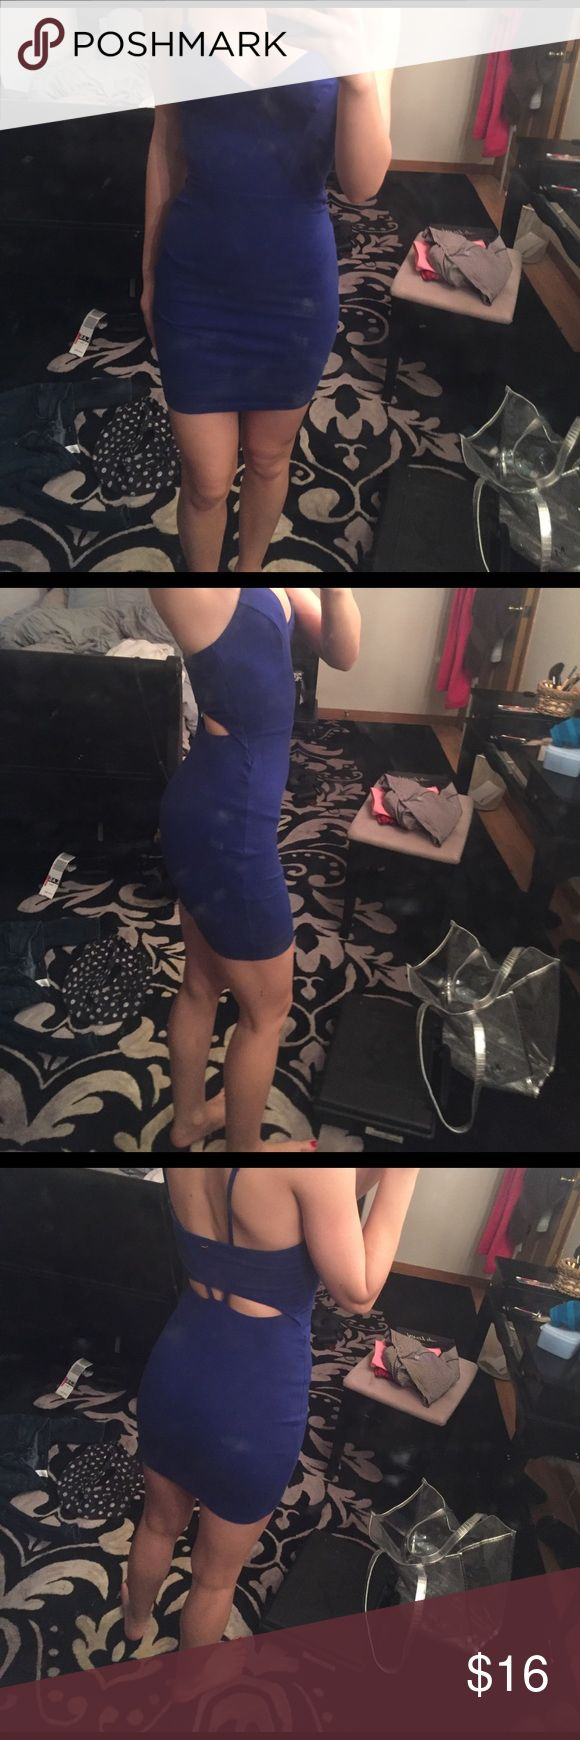 Guess royal blue bodycon dress Adjustable tank straps, open back, fitted royal blue dress from Guess extra small. Guess Dresses Mini